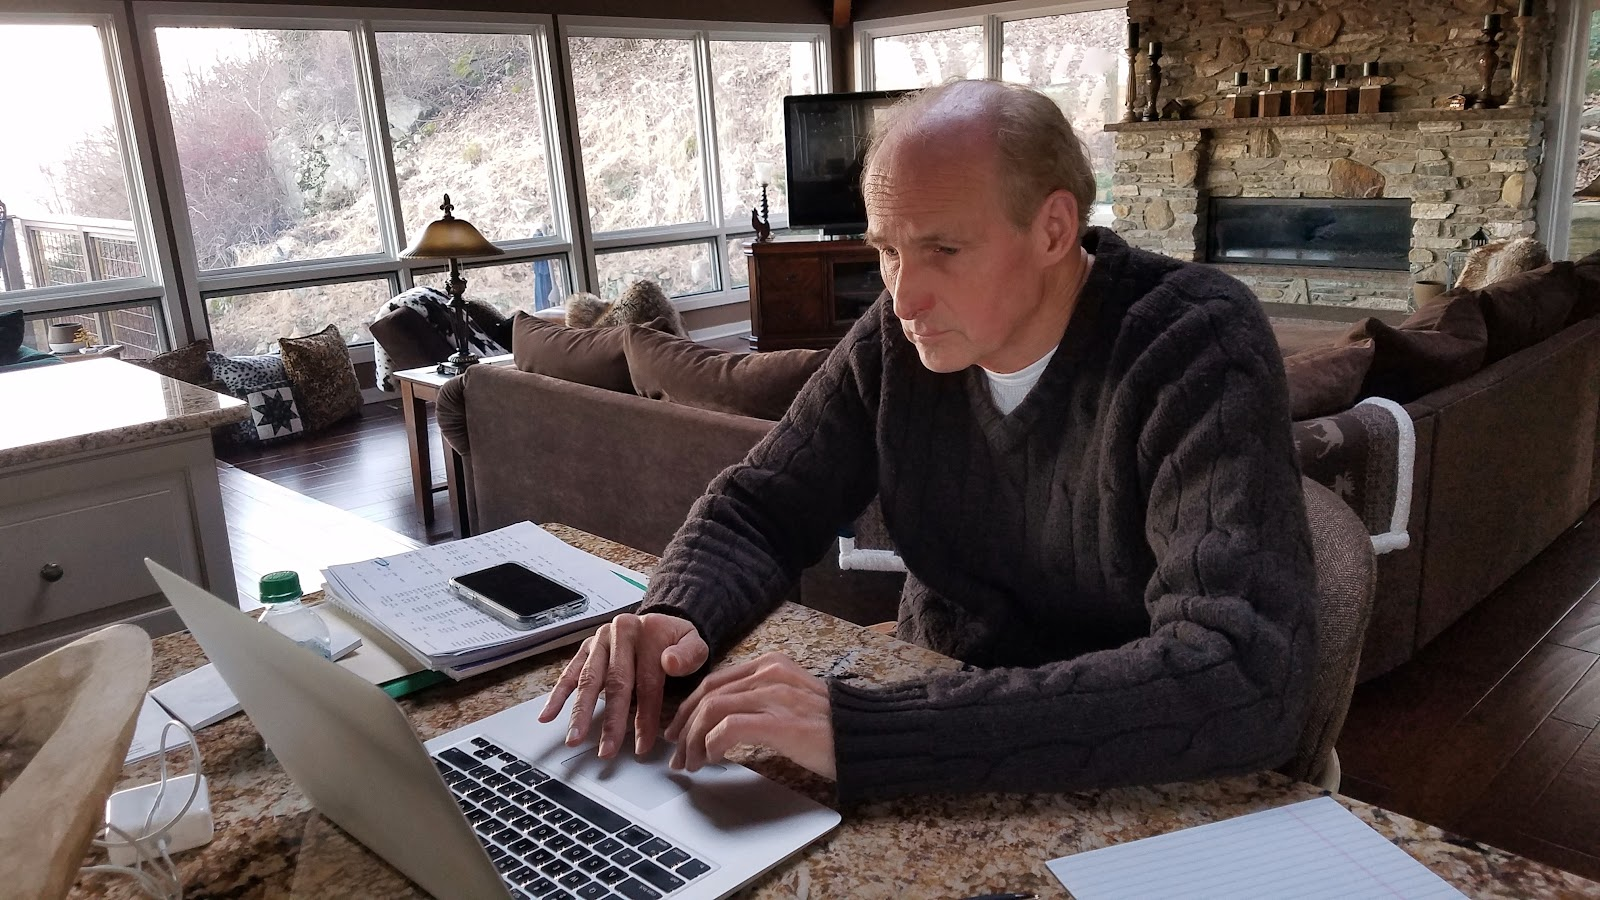 A man working from home on his computer